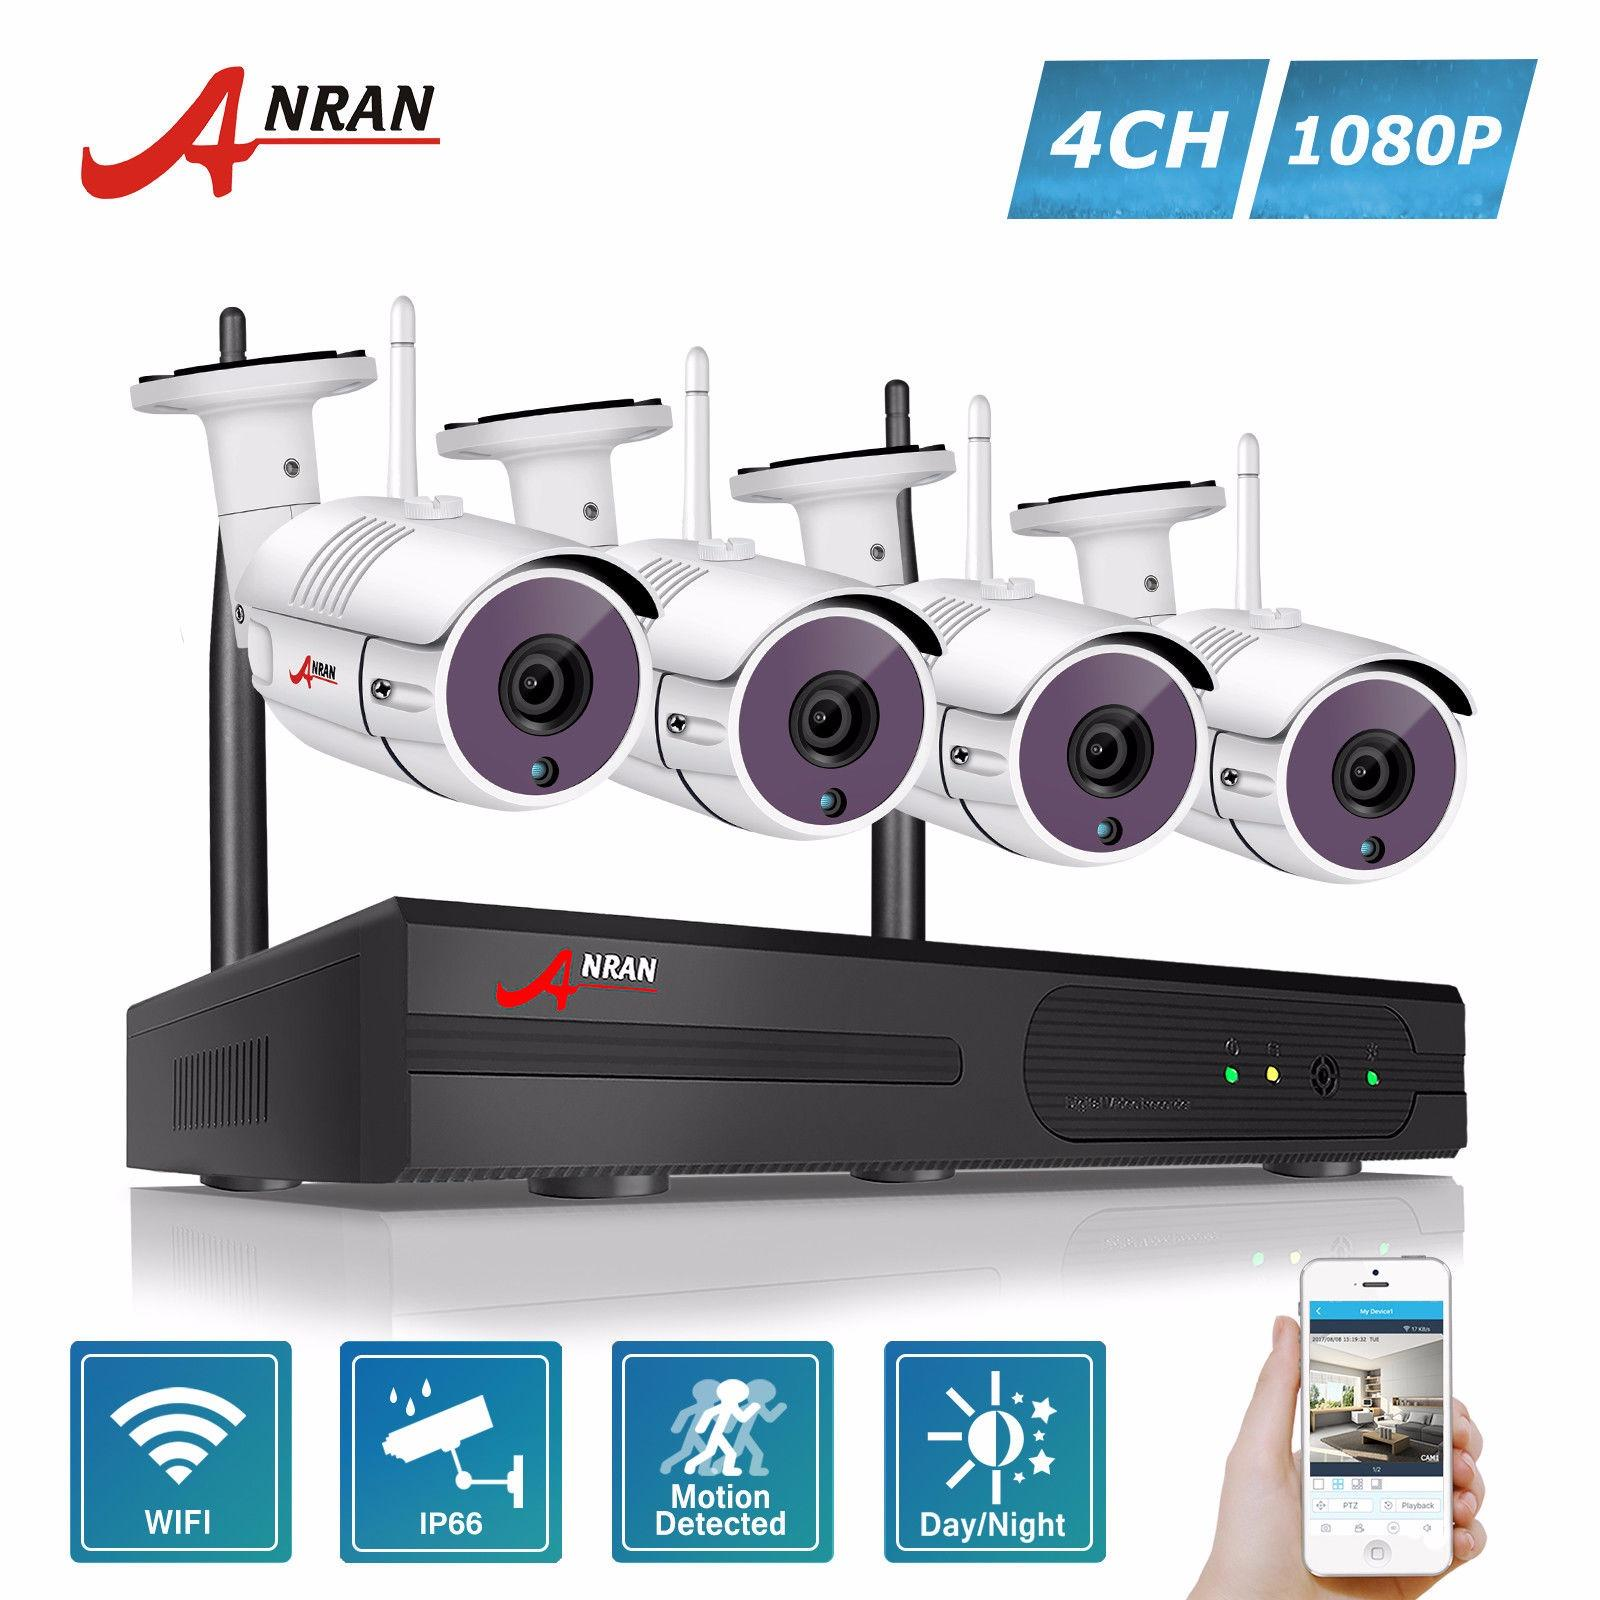 Review Anran 4Ch Wireless Nvr Security Cctv System P2P 1080P Hd Outdoor Vandalproof Wfi Ip Camera Tiongkok